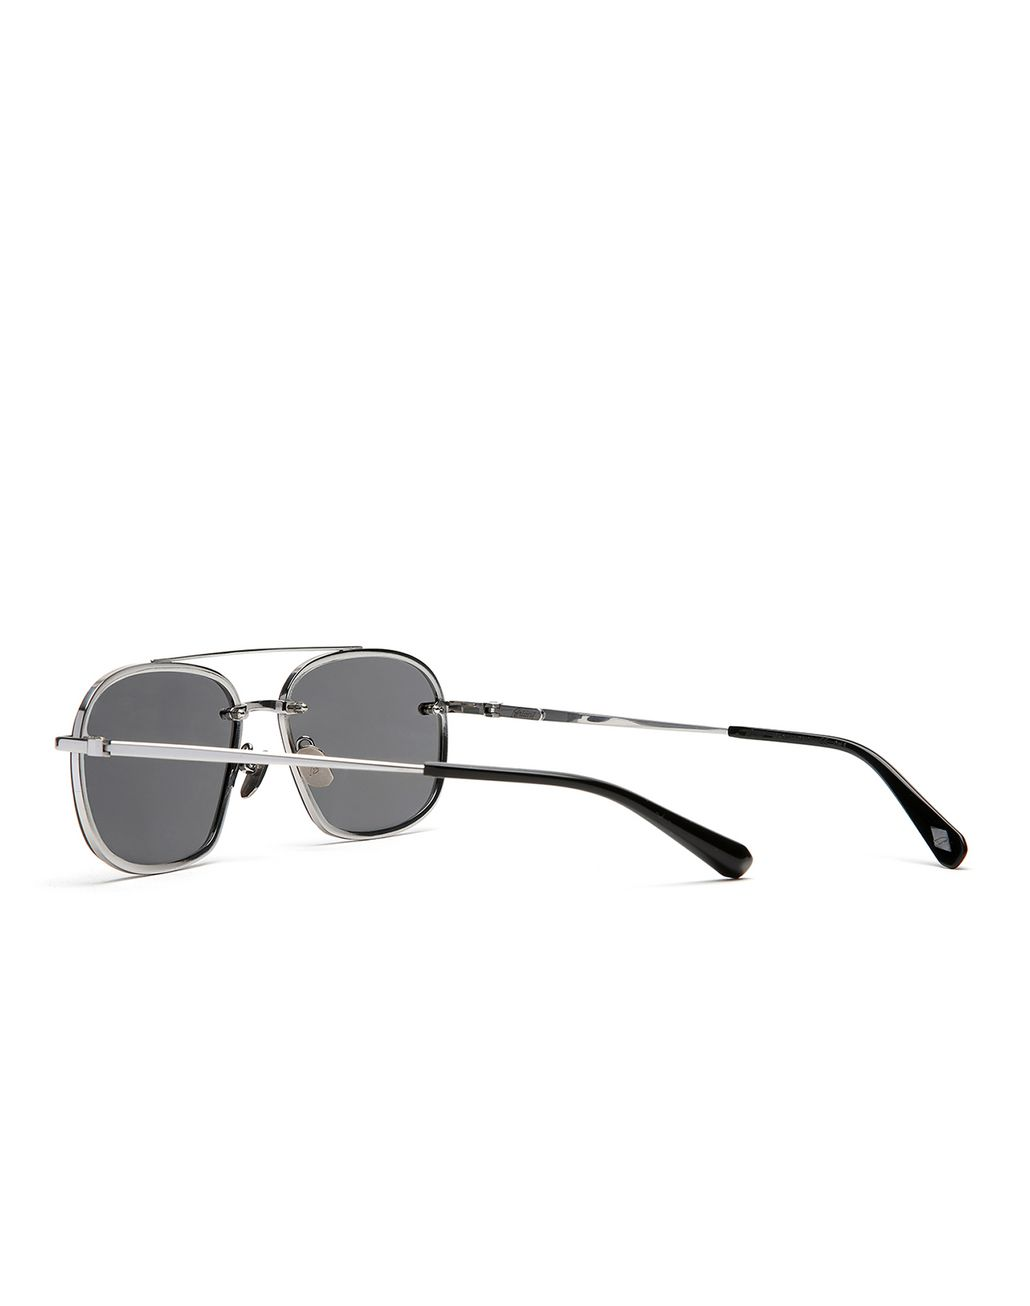 BRIONI Silver Teardrop Titanium Sunglasses with Grey Lenses  Sunglasses Man d